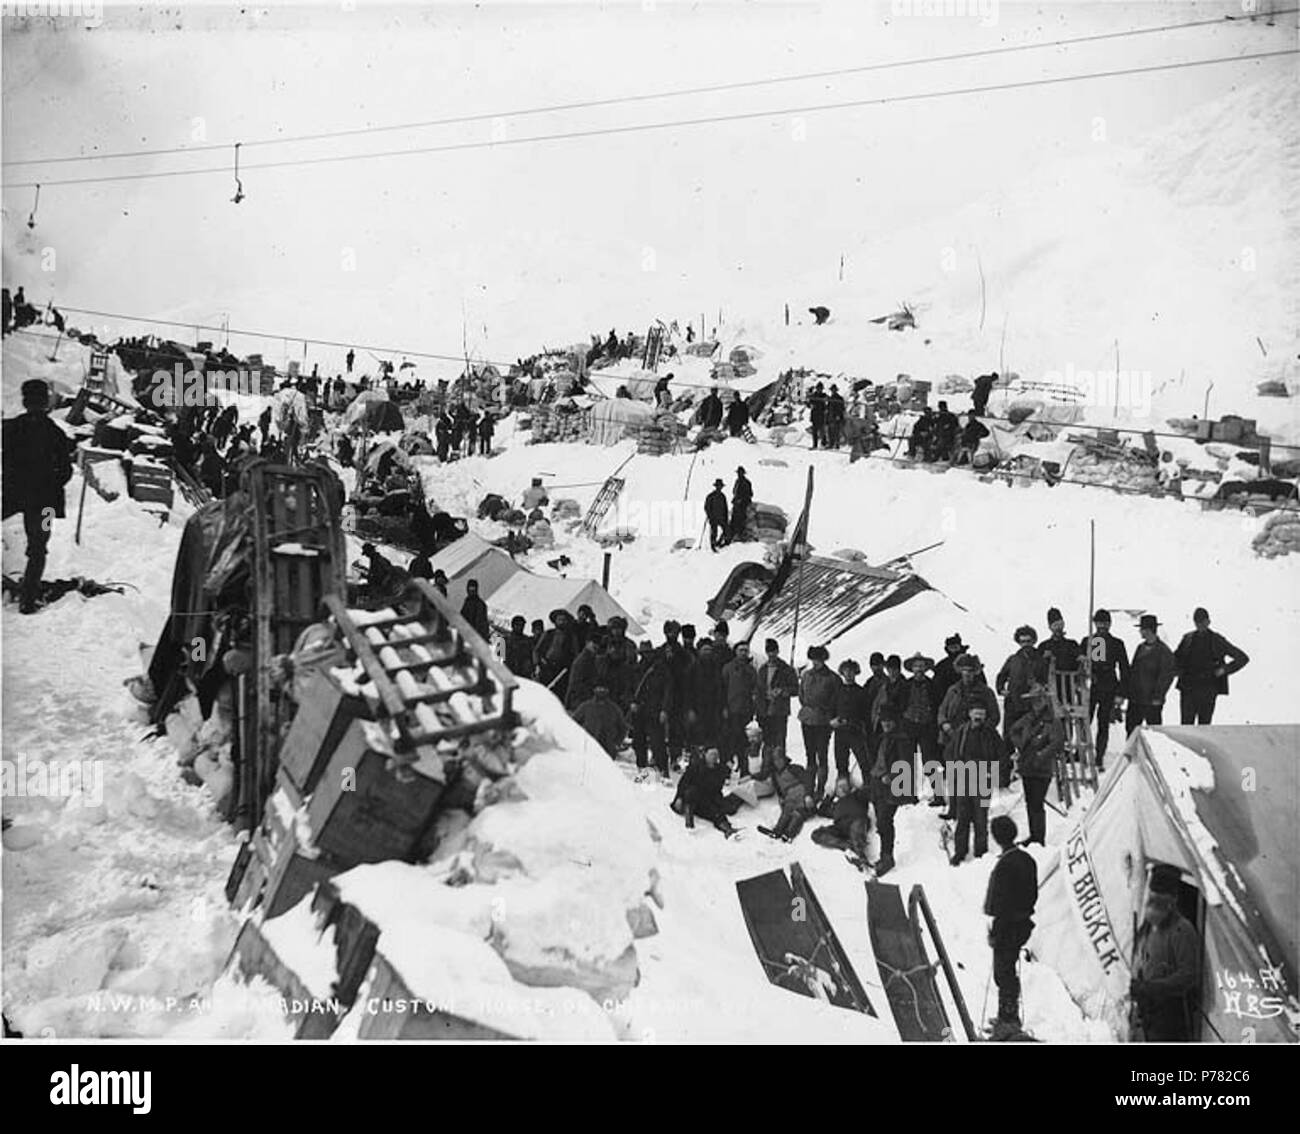 . English: North-West Mounted Police and Canadian custom house on Chilkoot summit, Alaska, ca. 1898. English: Shows Klondikers with supply caches . Caption on image: 'N.W.M.P. and Canadian custom house on Chilkoot summit' Original photograph by Eric A. Hegg 211; copied by Webster and Stevens 164.A . Klondike Gold Rush. Subjects (LCTGM): Sleds & sleighs--Alaska--Chilkoot Pass; Customhouses--Alaska--Chilkoot Pass Subjects (LCSH): Chilkoot Pass (Alaska); Mountain passes--Alaska; Chilkoot Trail; Trails--Alaska; North West Mounted Police (Canada)  . circa 1898 10 North-West Mounted Police and Canad - Stock Image